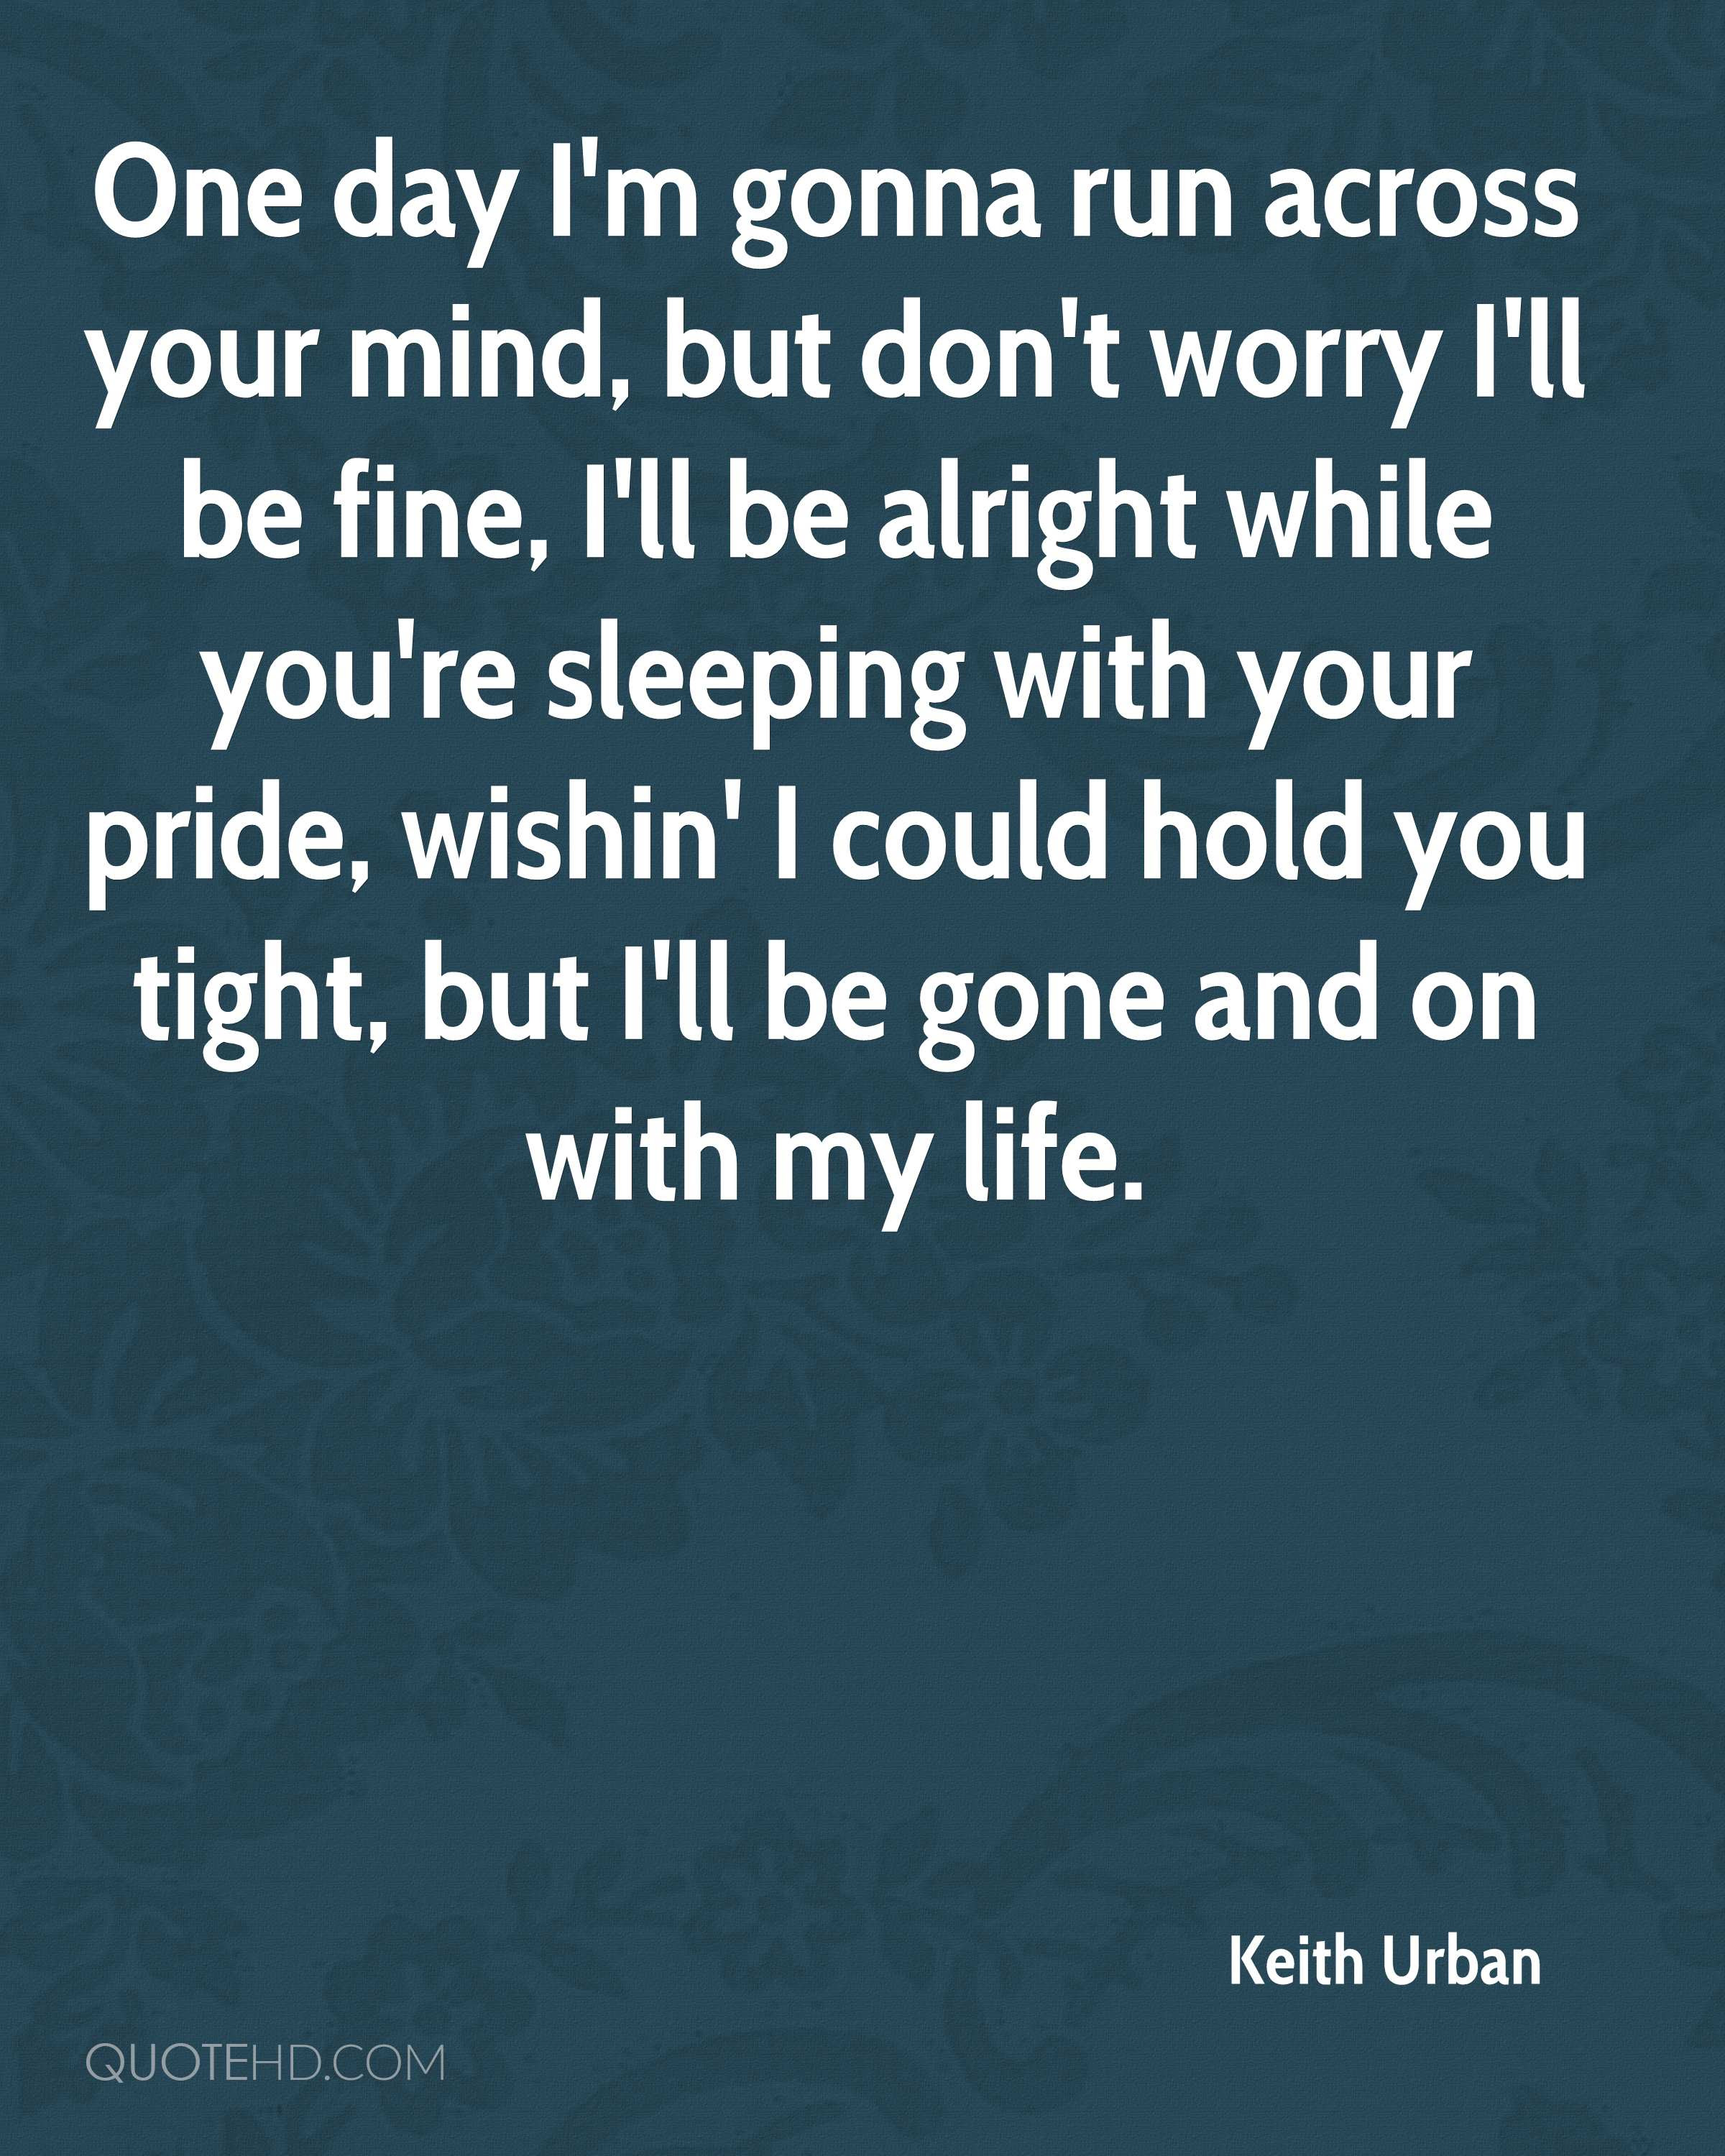 Keith Urban Quotes Quotehd